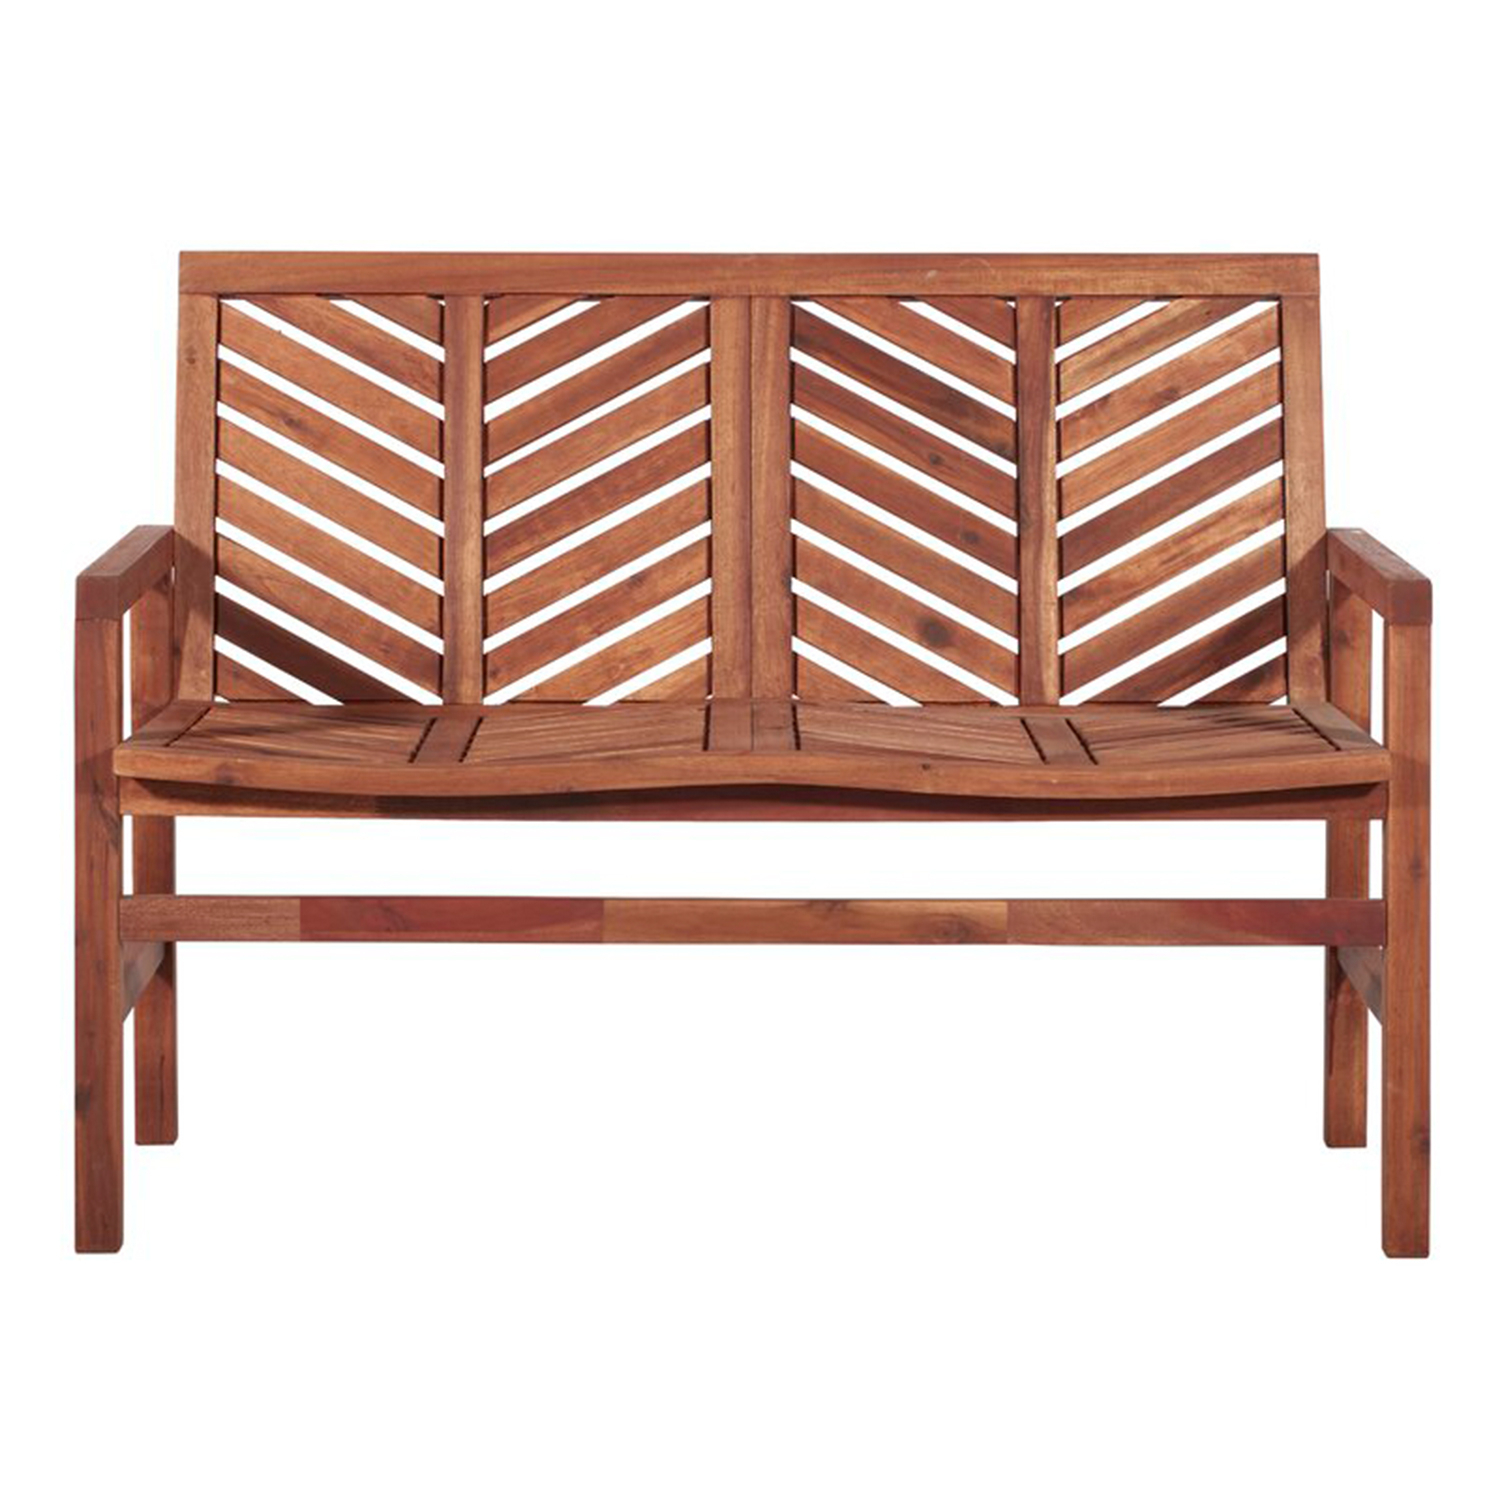 The 10 Best Deals From Wayfair'S Outdoor Furniture Sale Regarding Skoog Chevron Wooden Storage Benches (View 7 of 25)